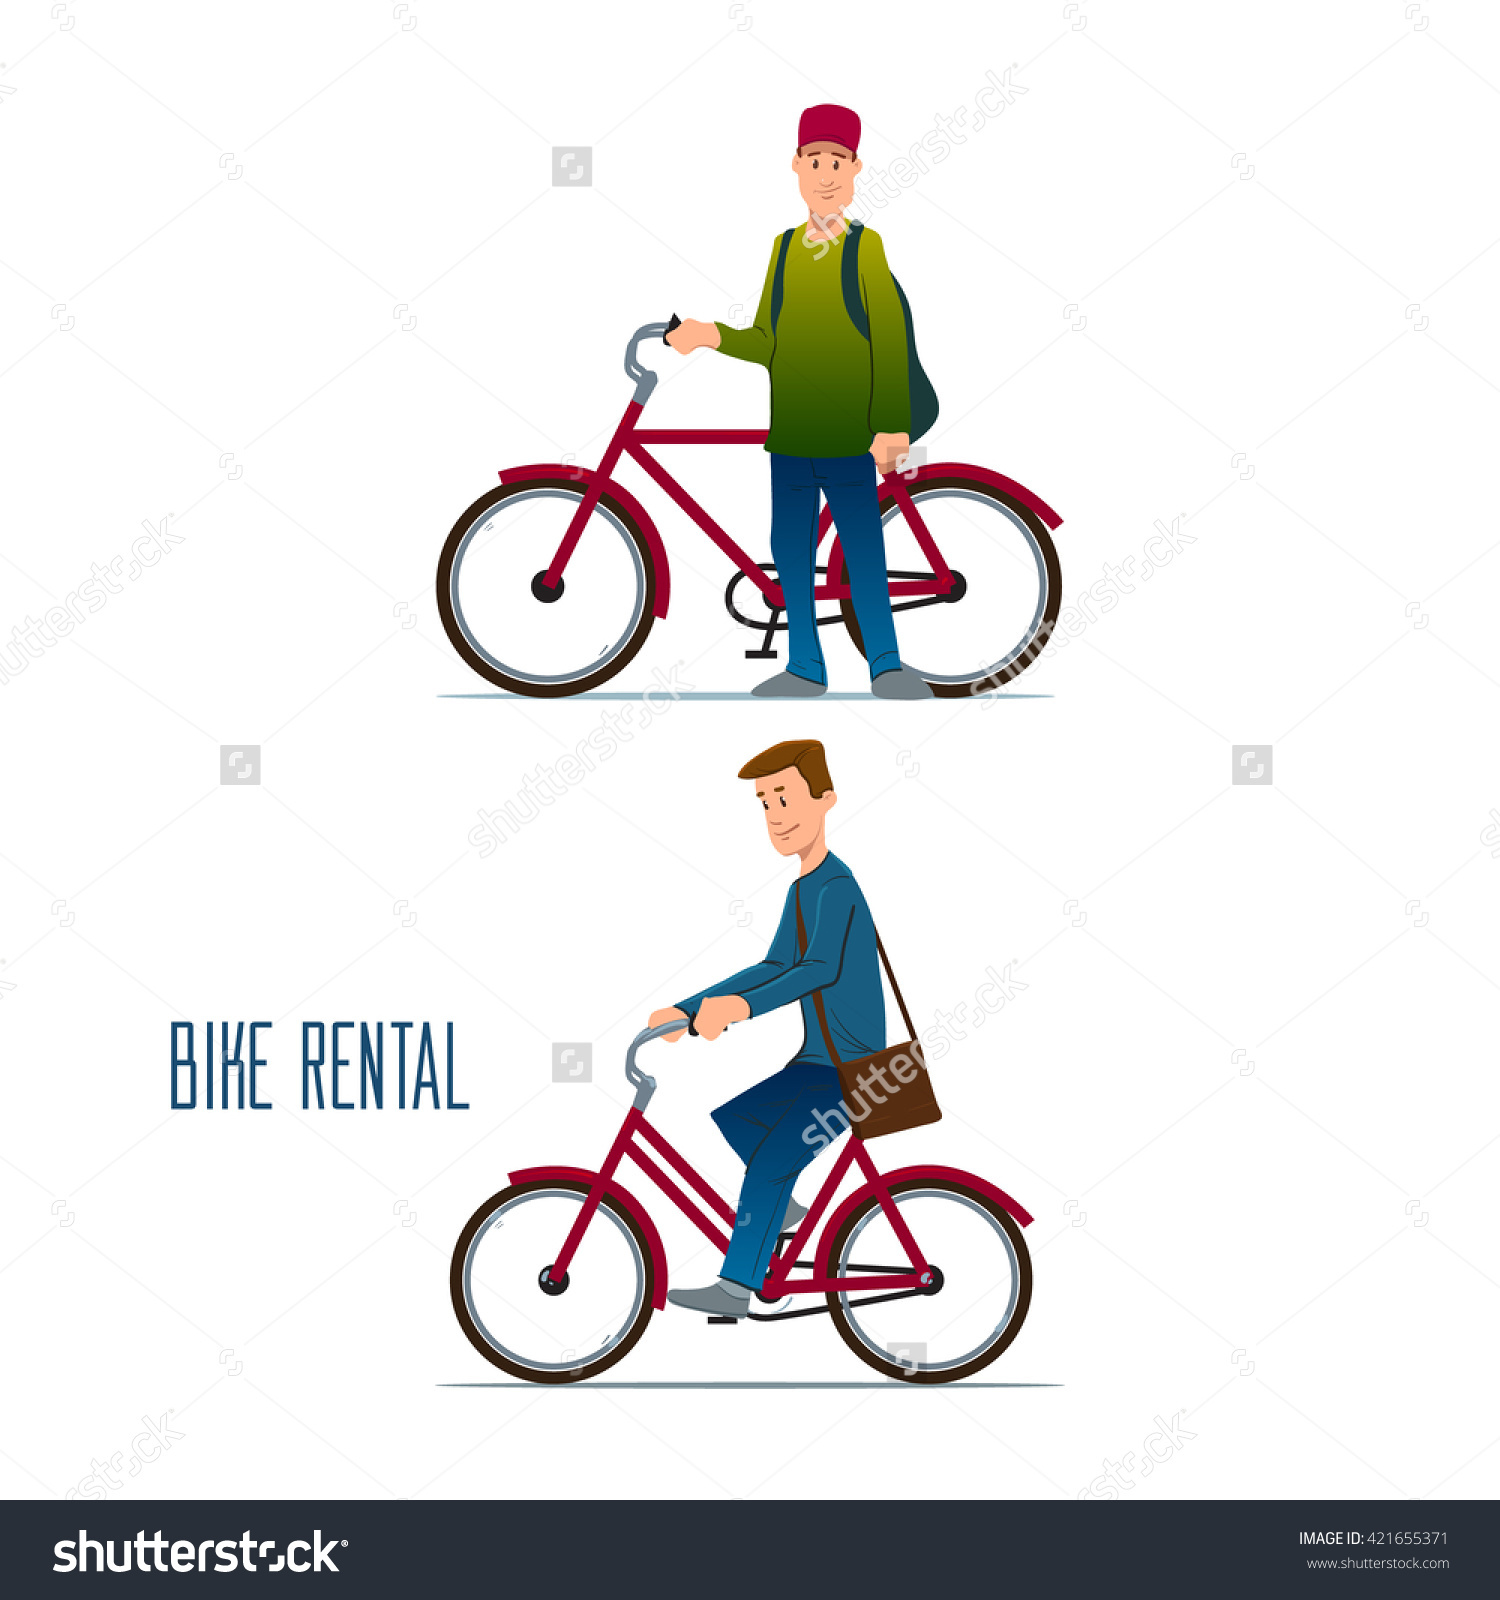 Man Riding Bike, Rental, City Bike Hire Rental, Tours For Tourists.